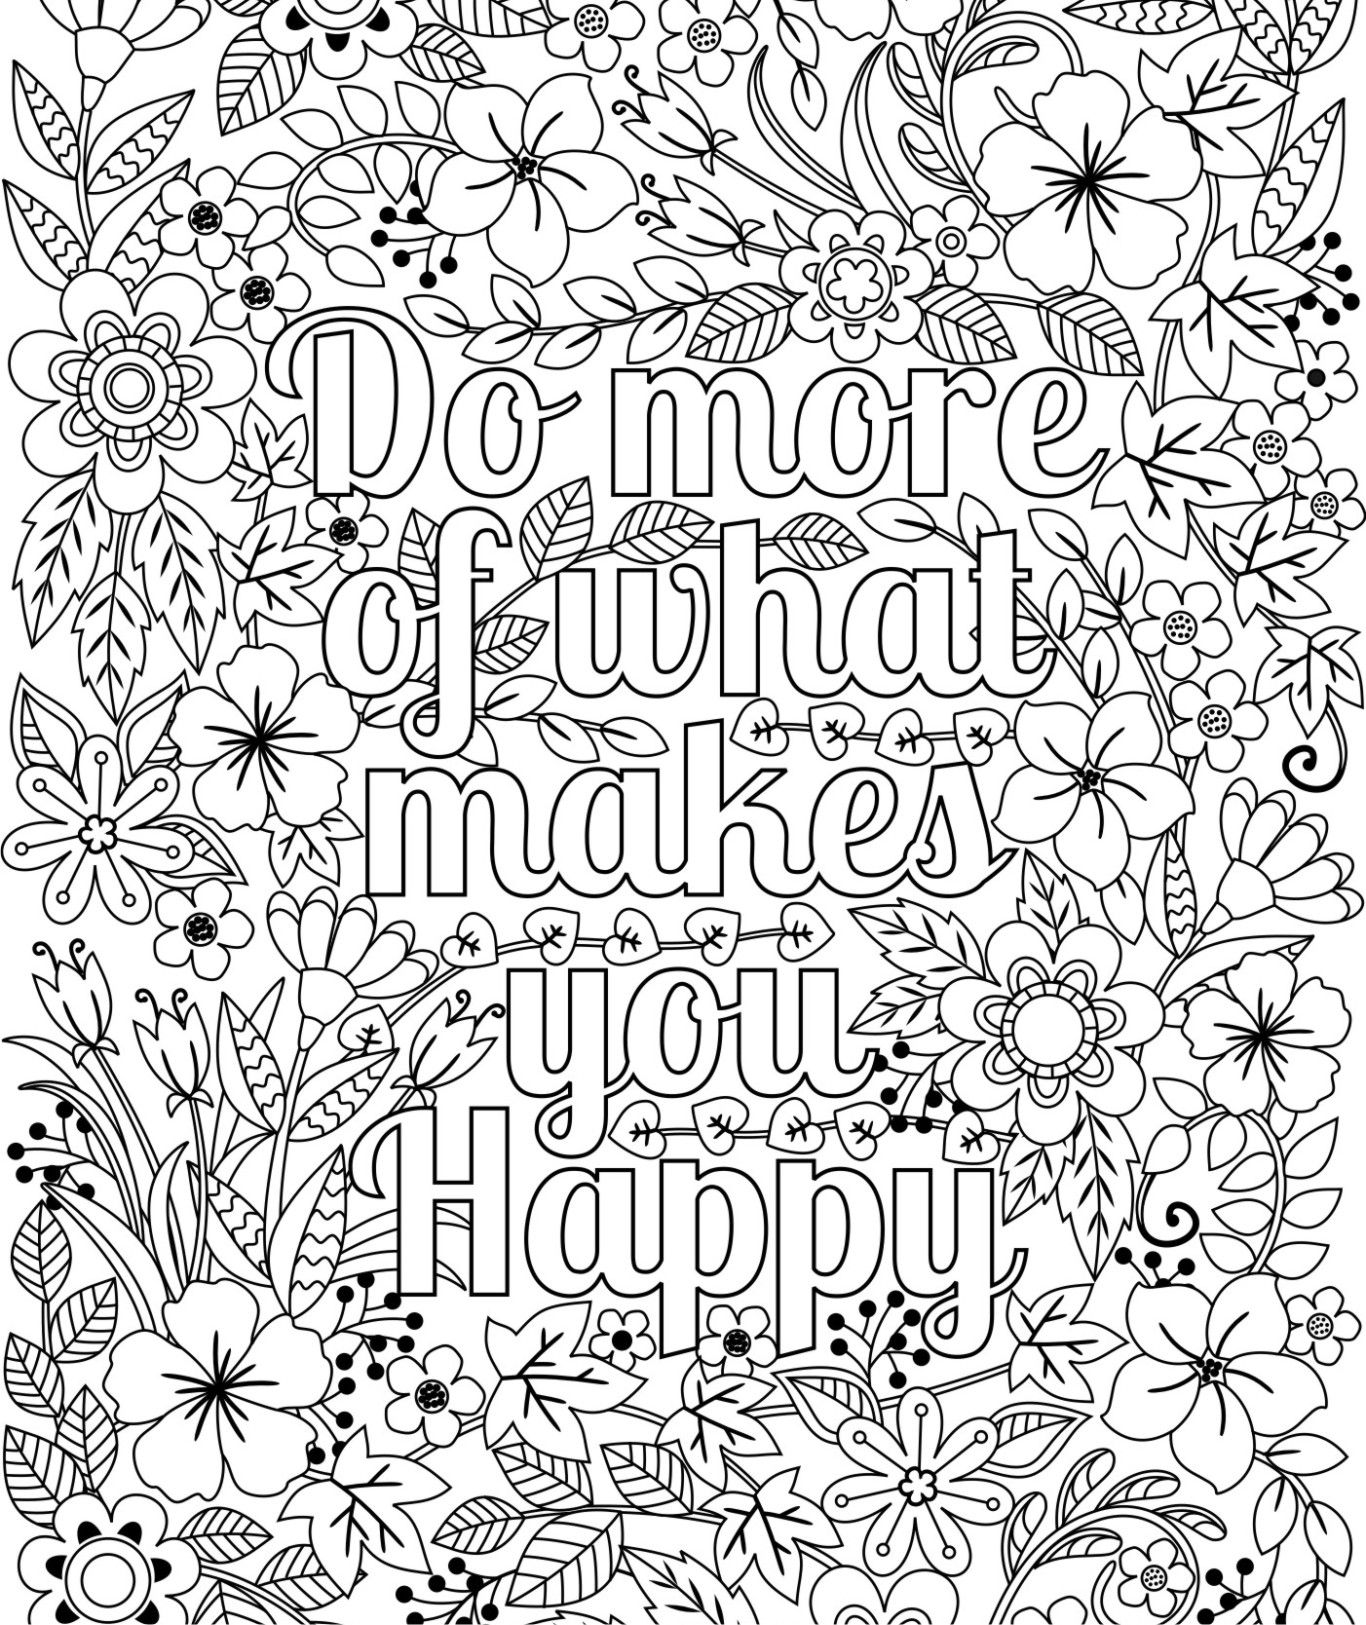 Do more of what makes you happy coloring page for kids adults flower design inspirational artwork digital download